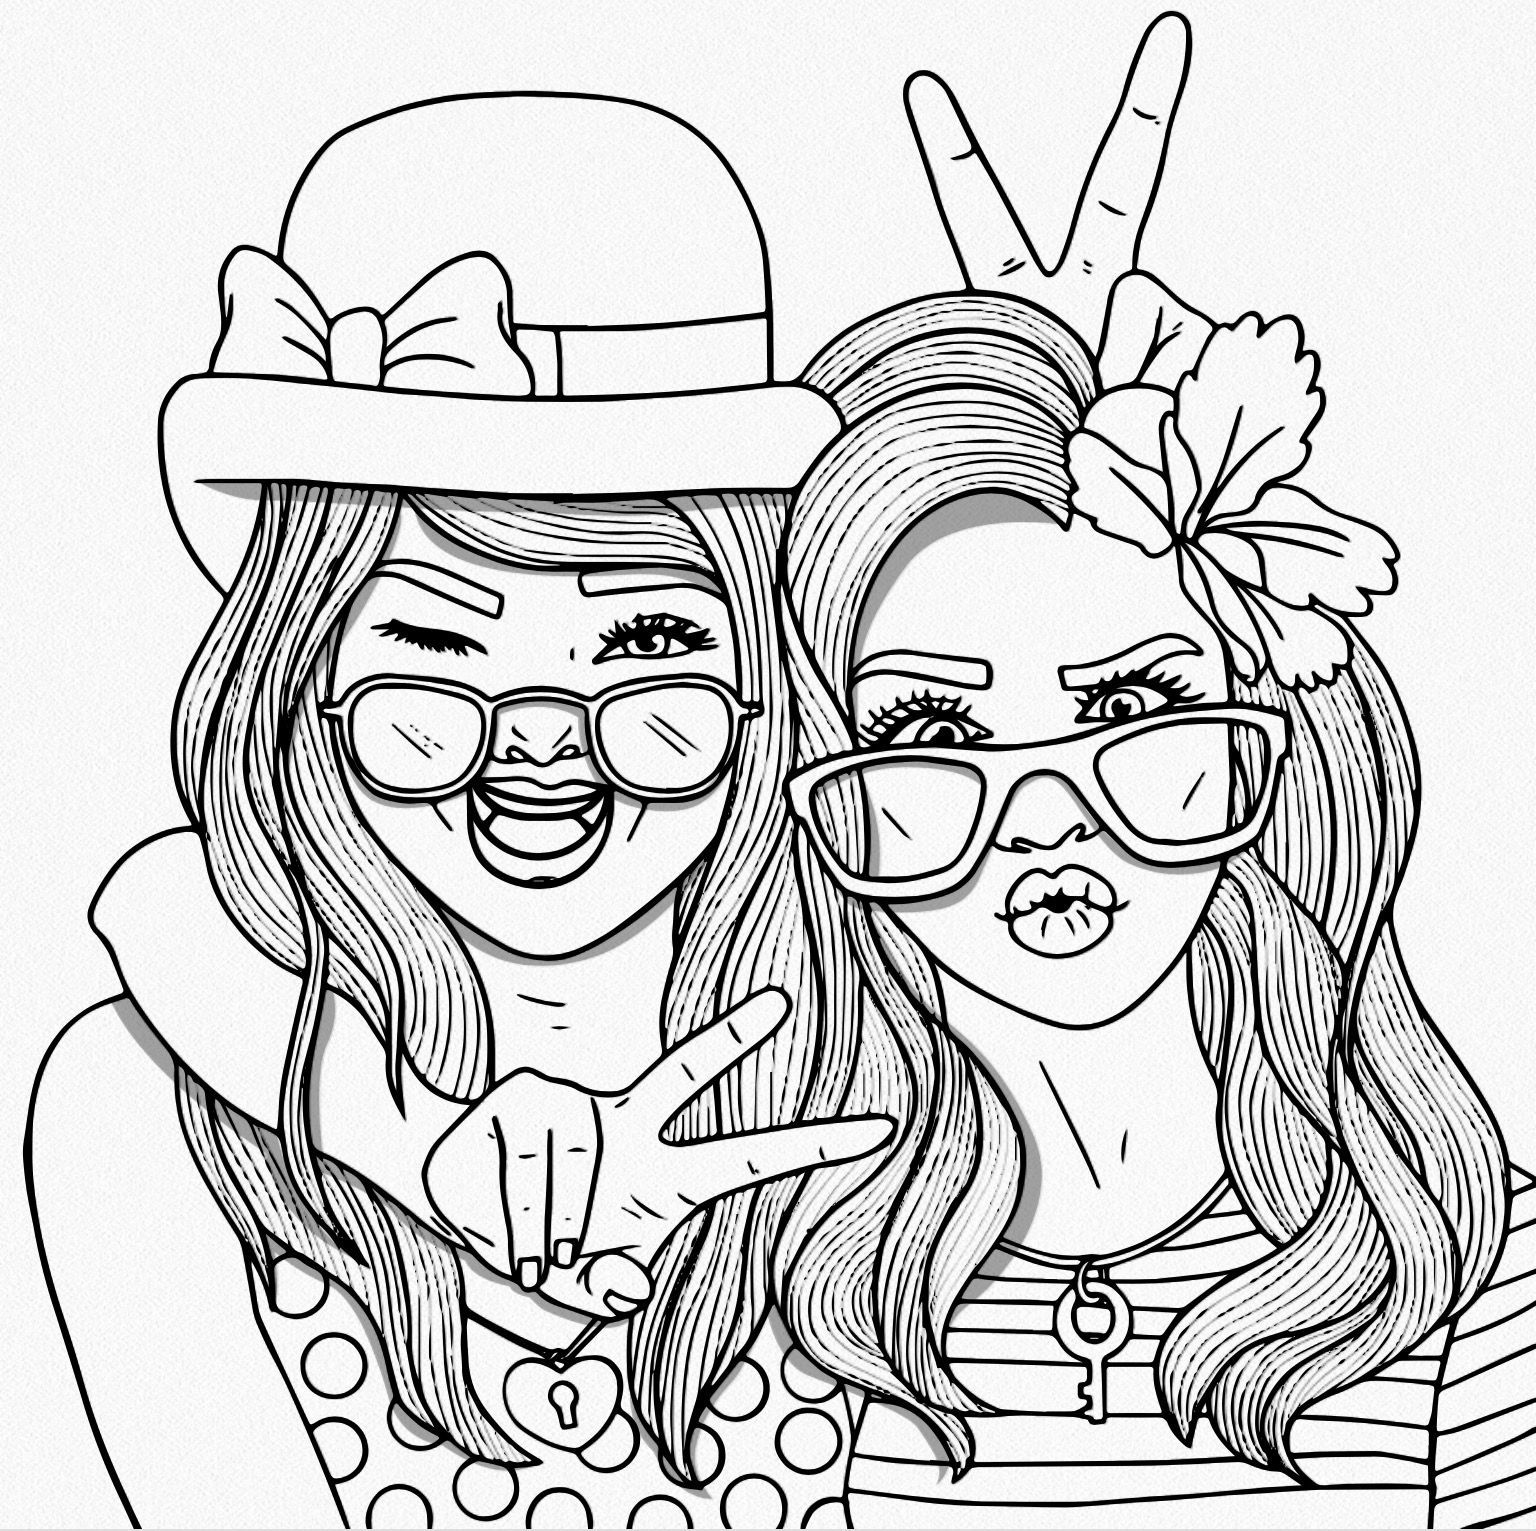 Best Friend Coloring Pages For Kids In 2020 People Coloring Pages Cool Coloring Pages Barbie Coloring Pages